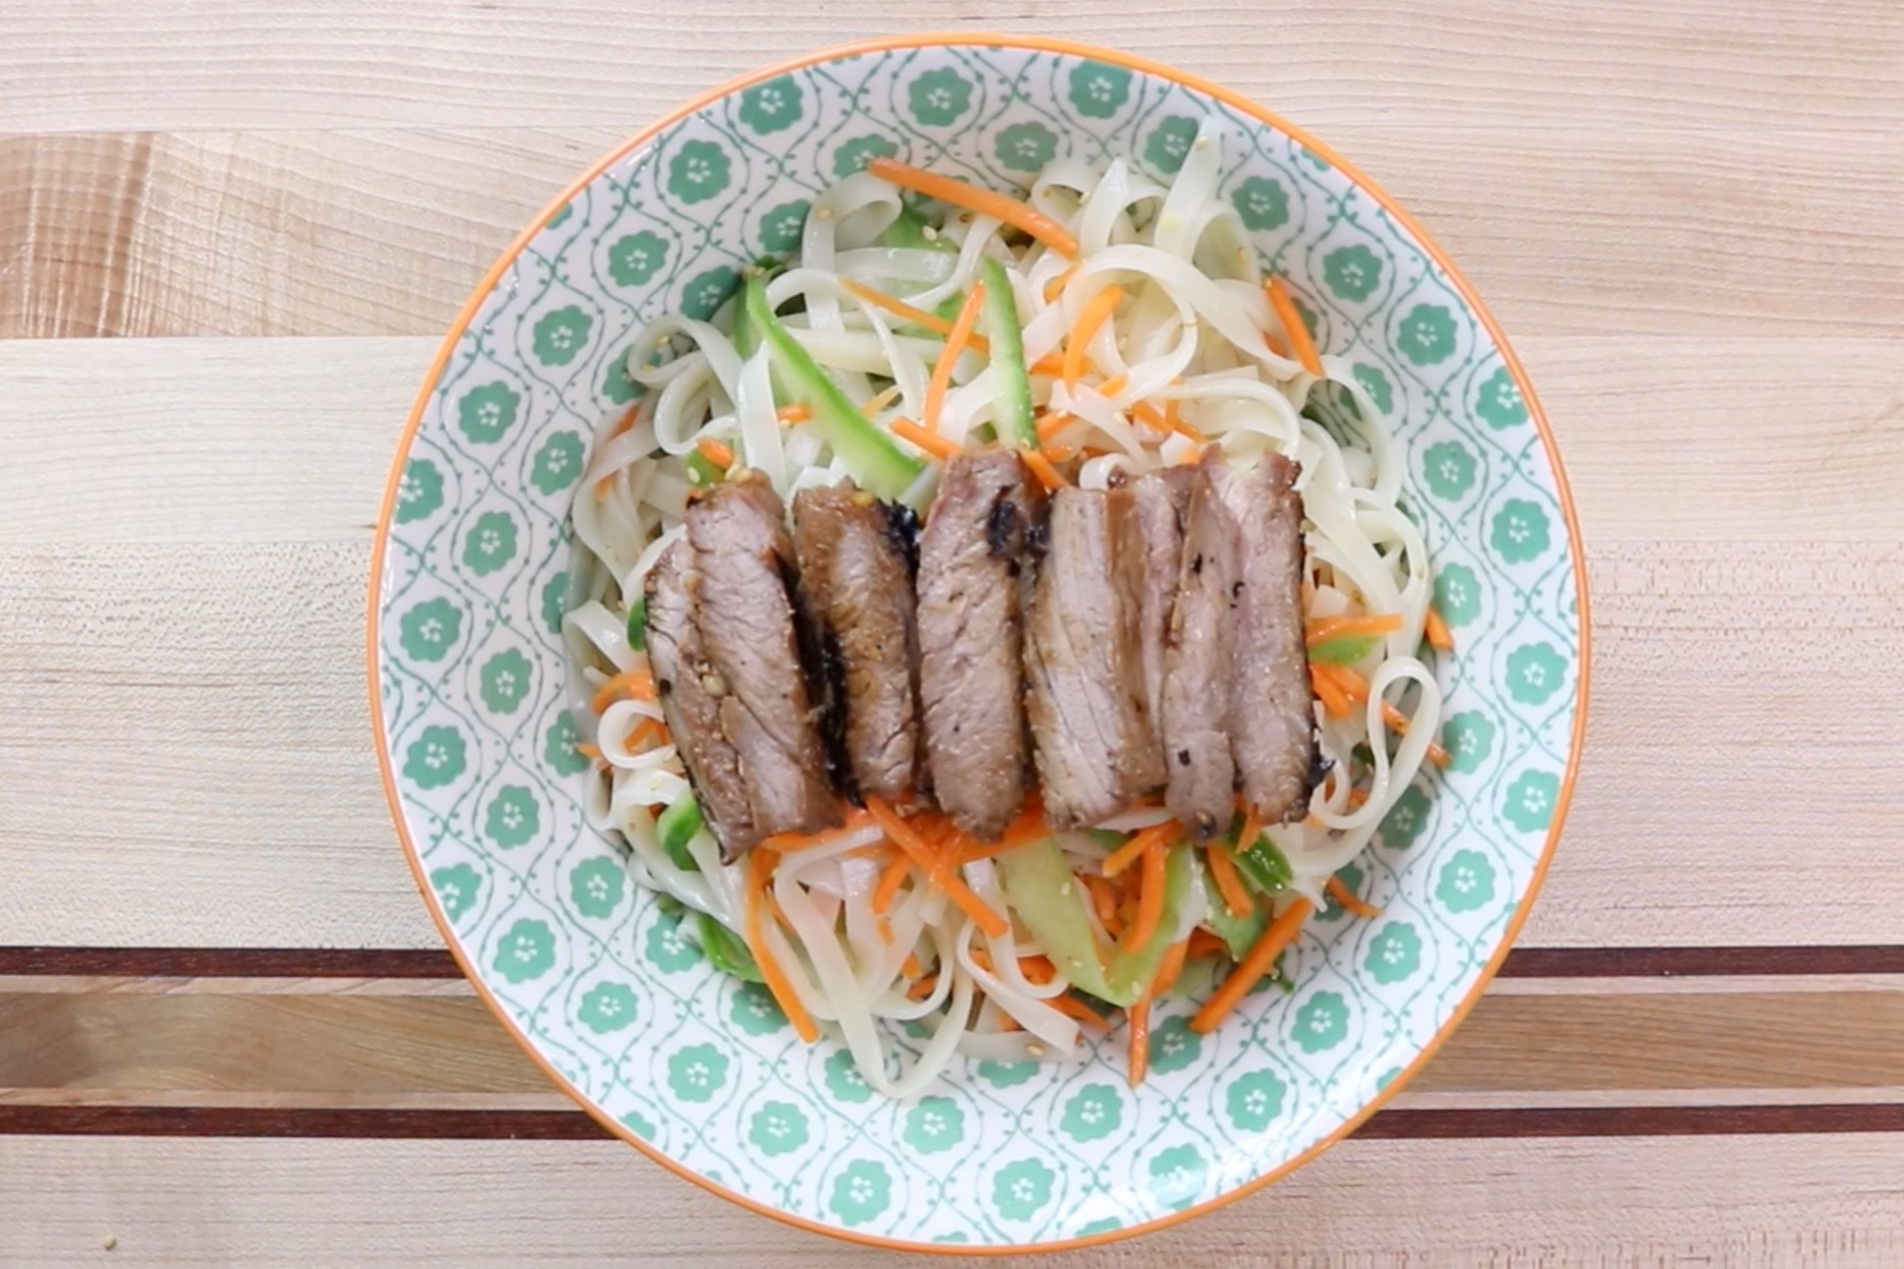 9. Slice steak into thin strips and lay on top of salad. -